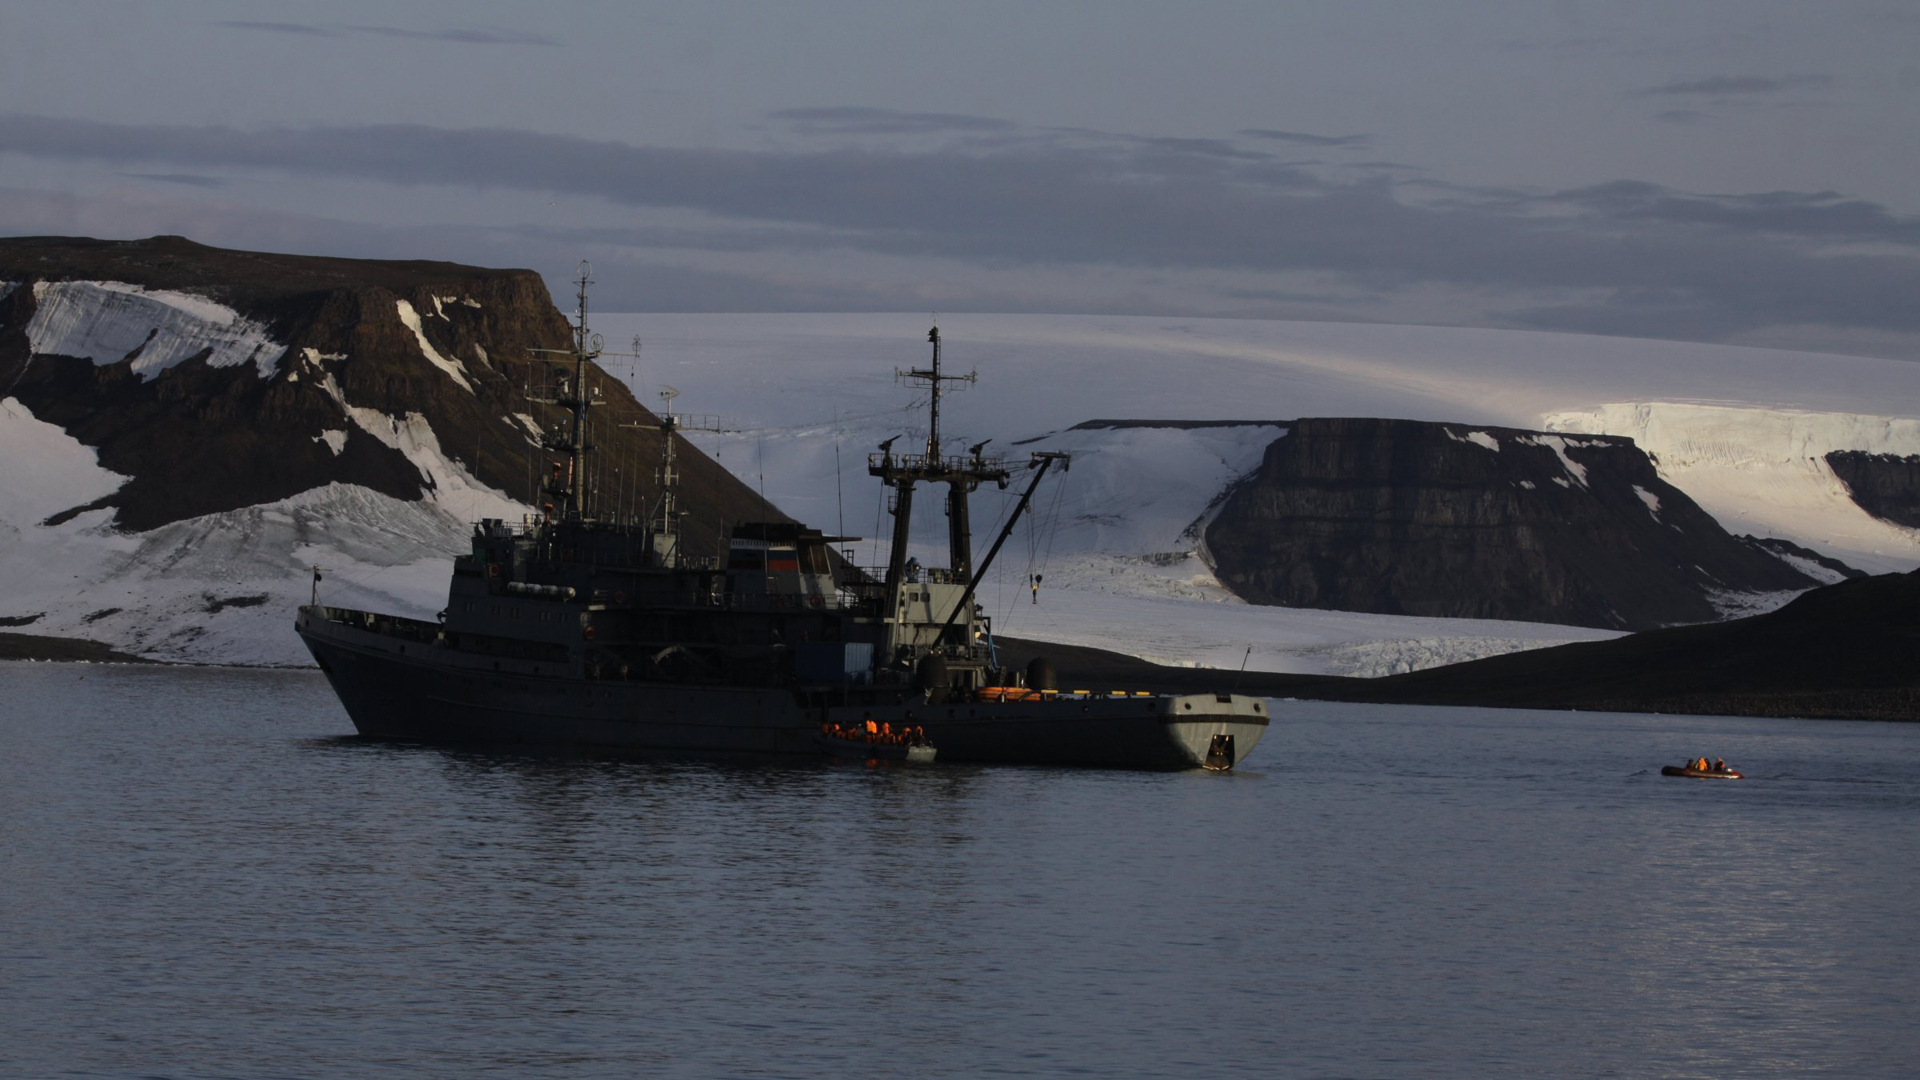 A Russian vessel is seen in a file photo. (Credit: Russian Northern Fleet)